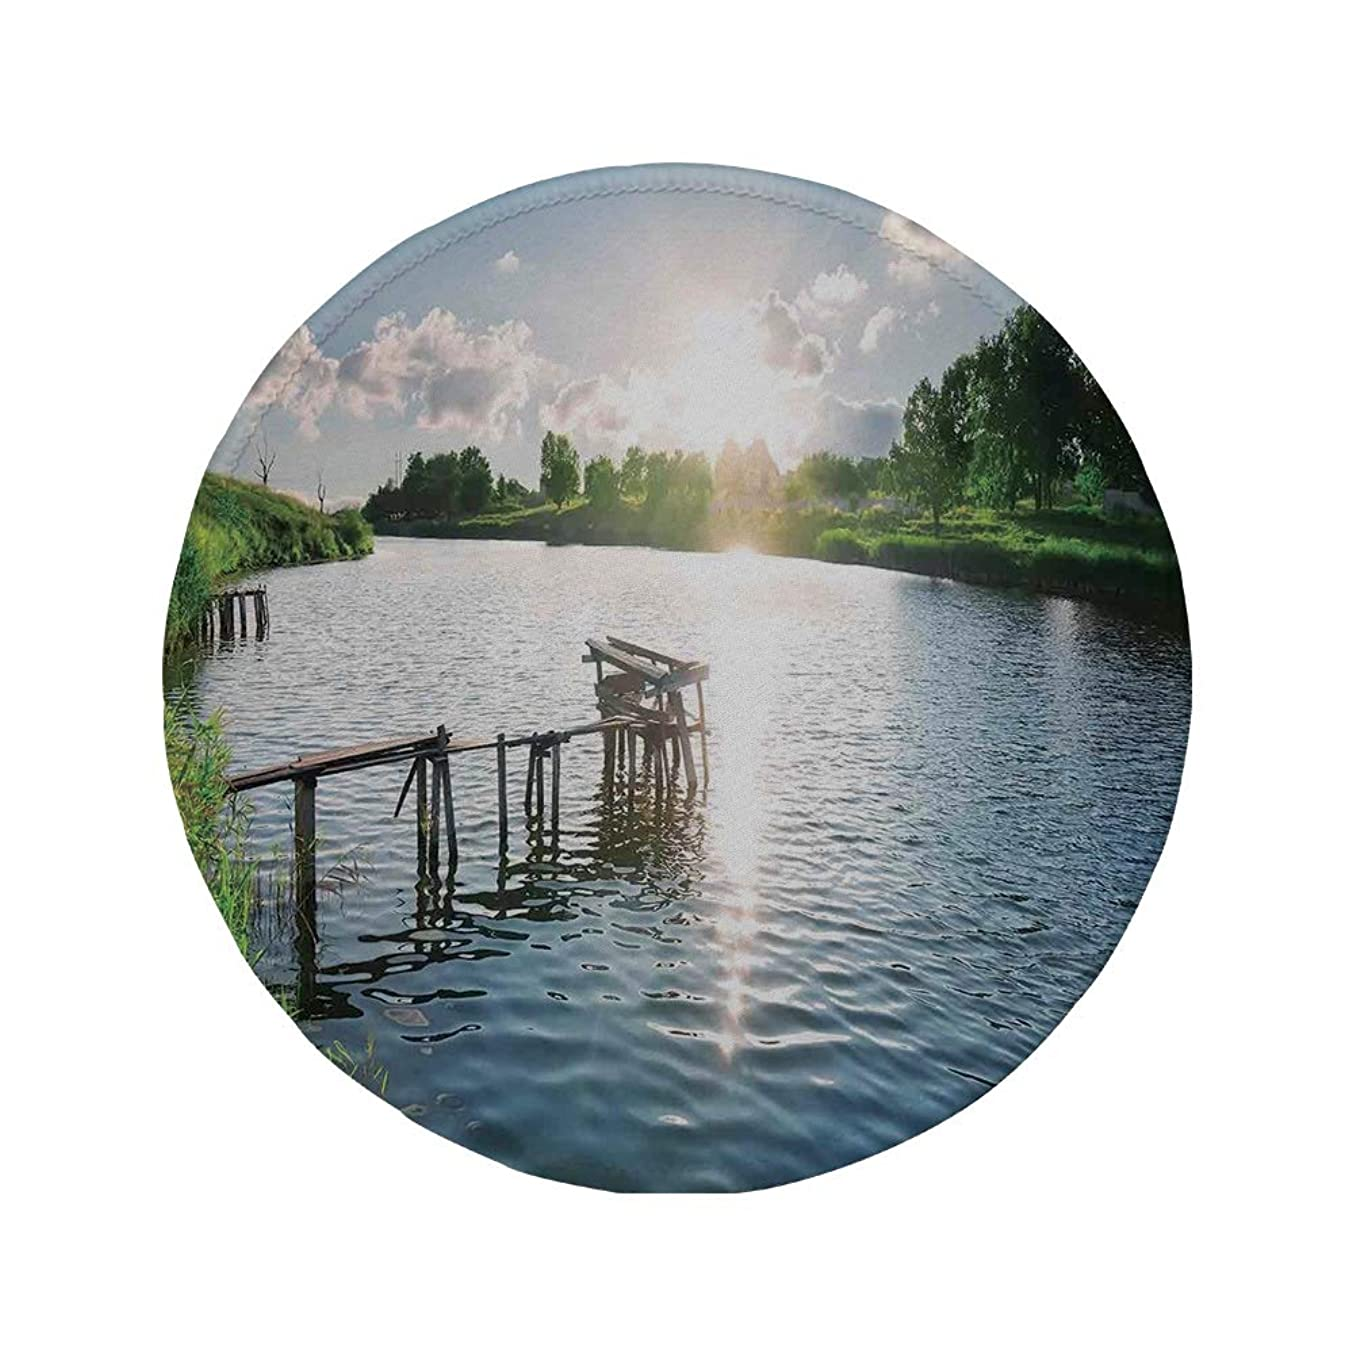 Non-Slip Rubber Round Mouse Pad,Lake House Decor,Broken Wooden Pier on a River at Sunrise in Mediterranean Rurals Nature Art Photo,Blue Green,11.8